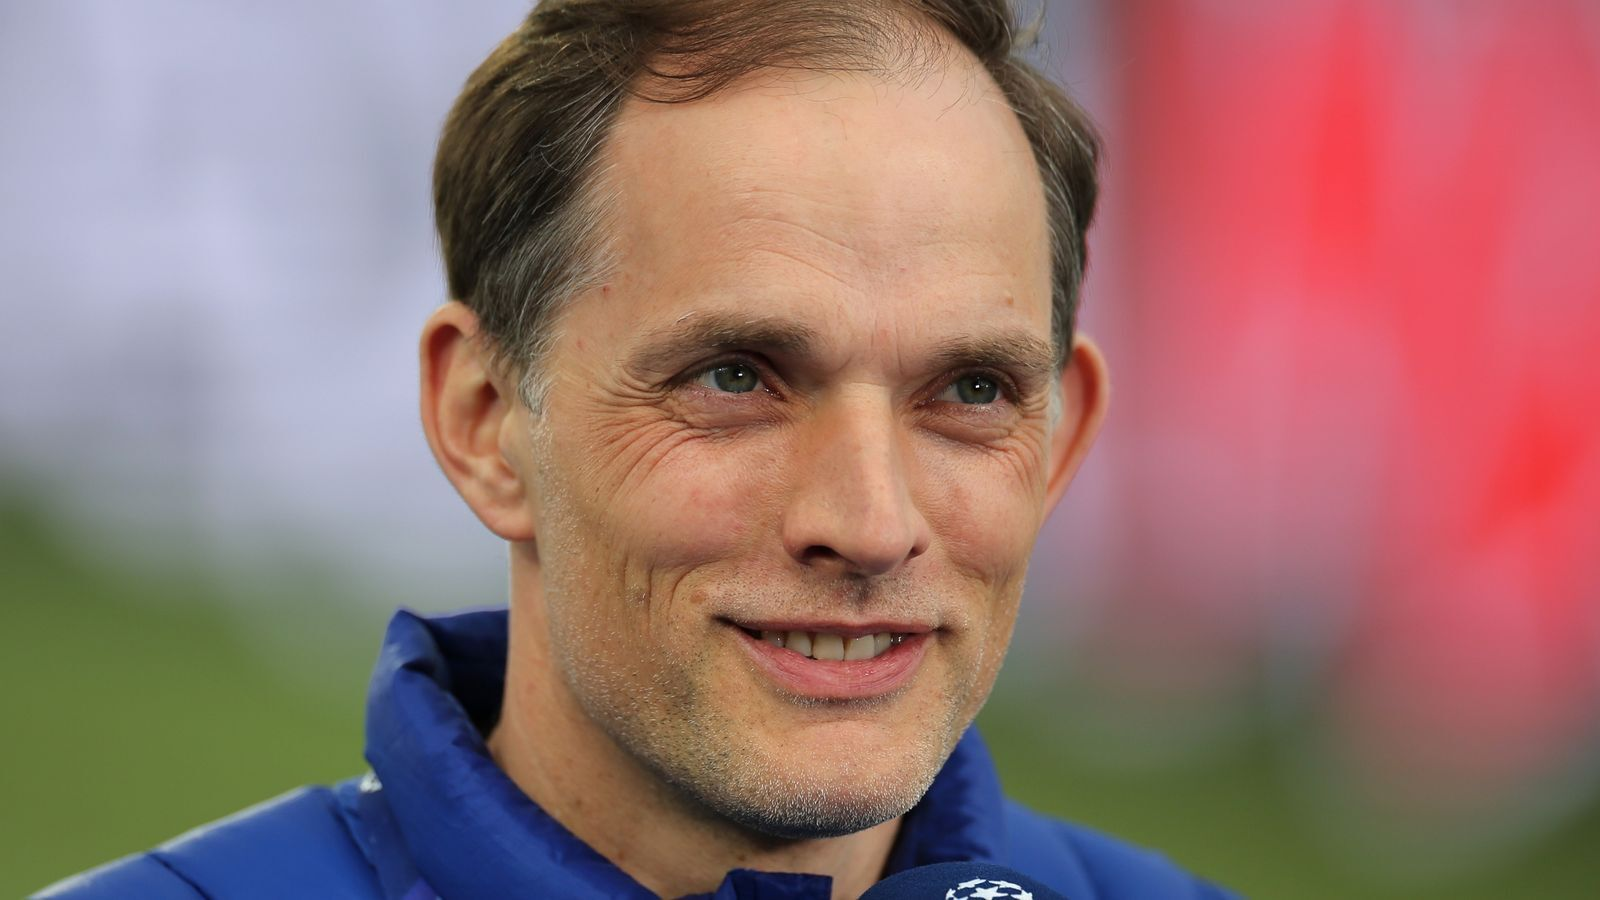 Thomas Tuchel is happier at Chelsea than he has been in years, Says the coach himself